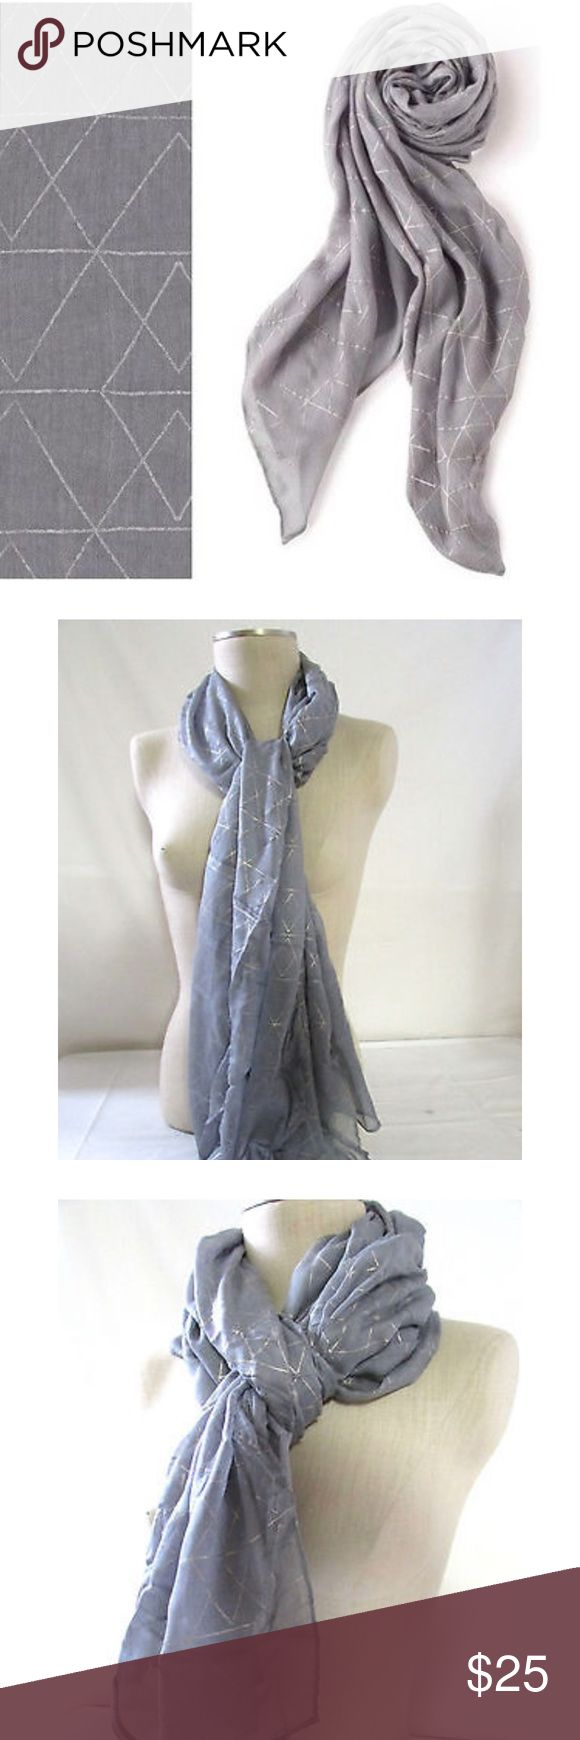 NWOT Stella & Dot DoveGrey Metallic Westwood Scarf A silver scarf or metallic scarf is a great accent that adds a bit of spice (but not too much) to your outfit. Stella & Dot Accessories Scarves & Wraps